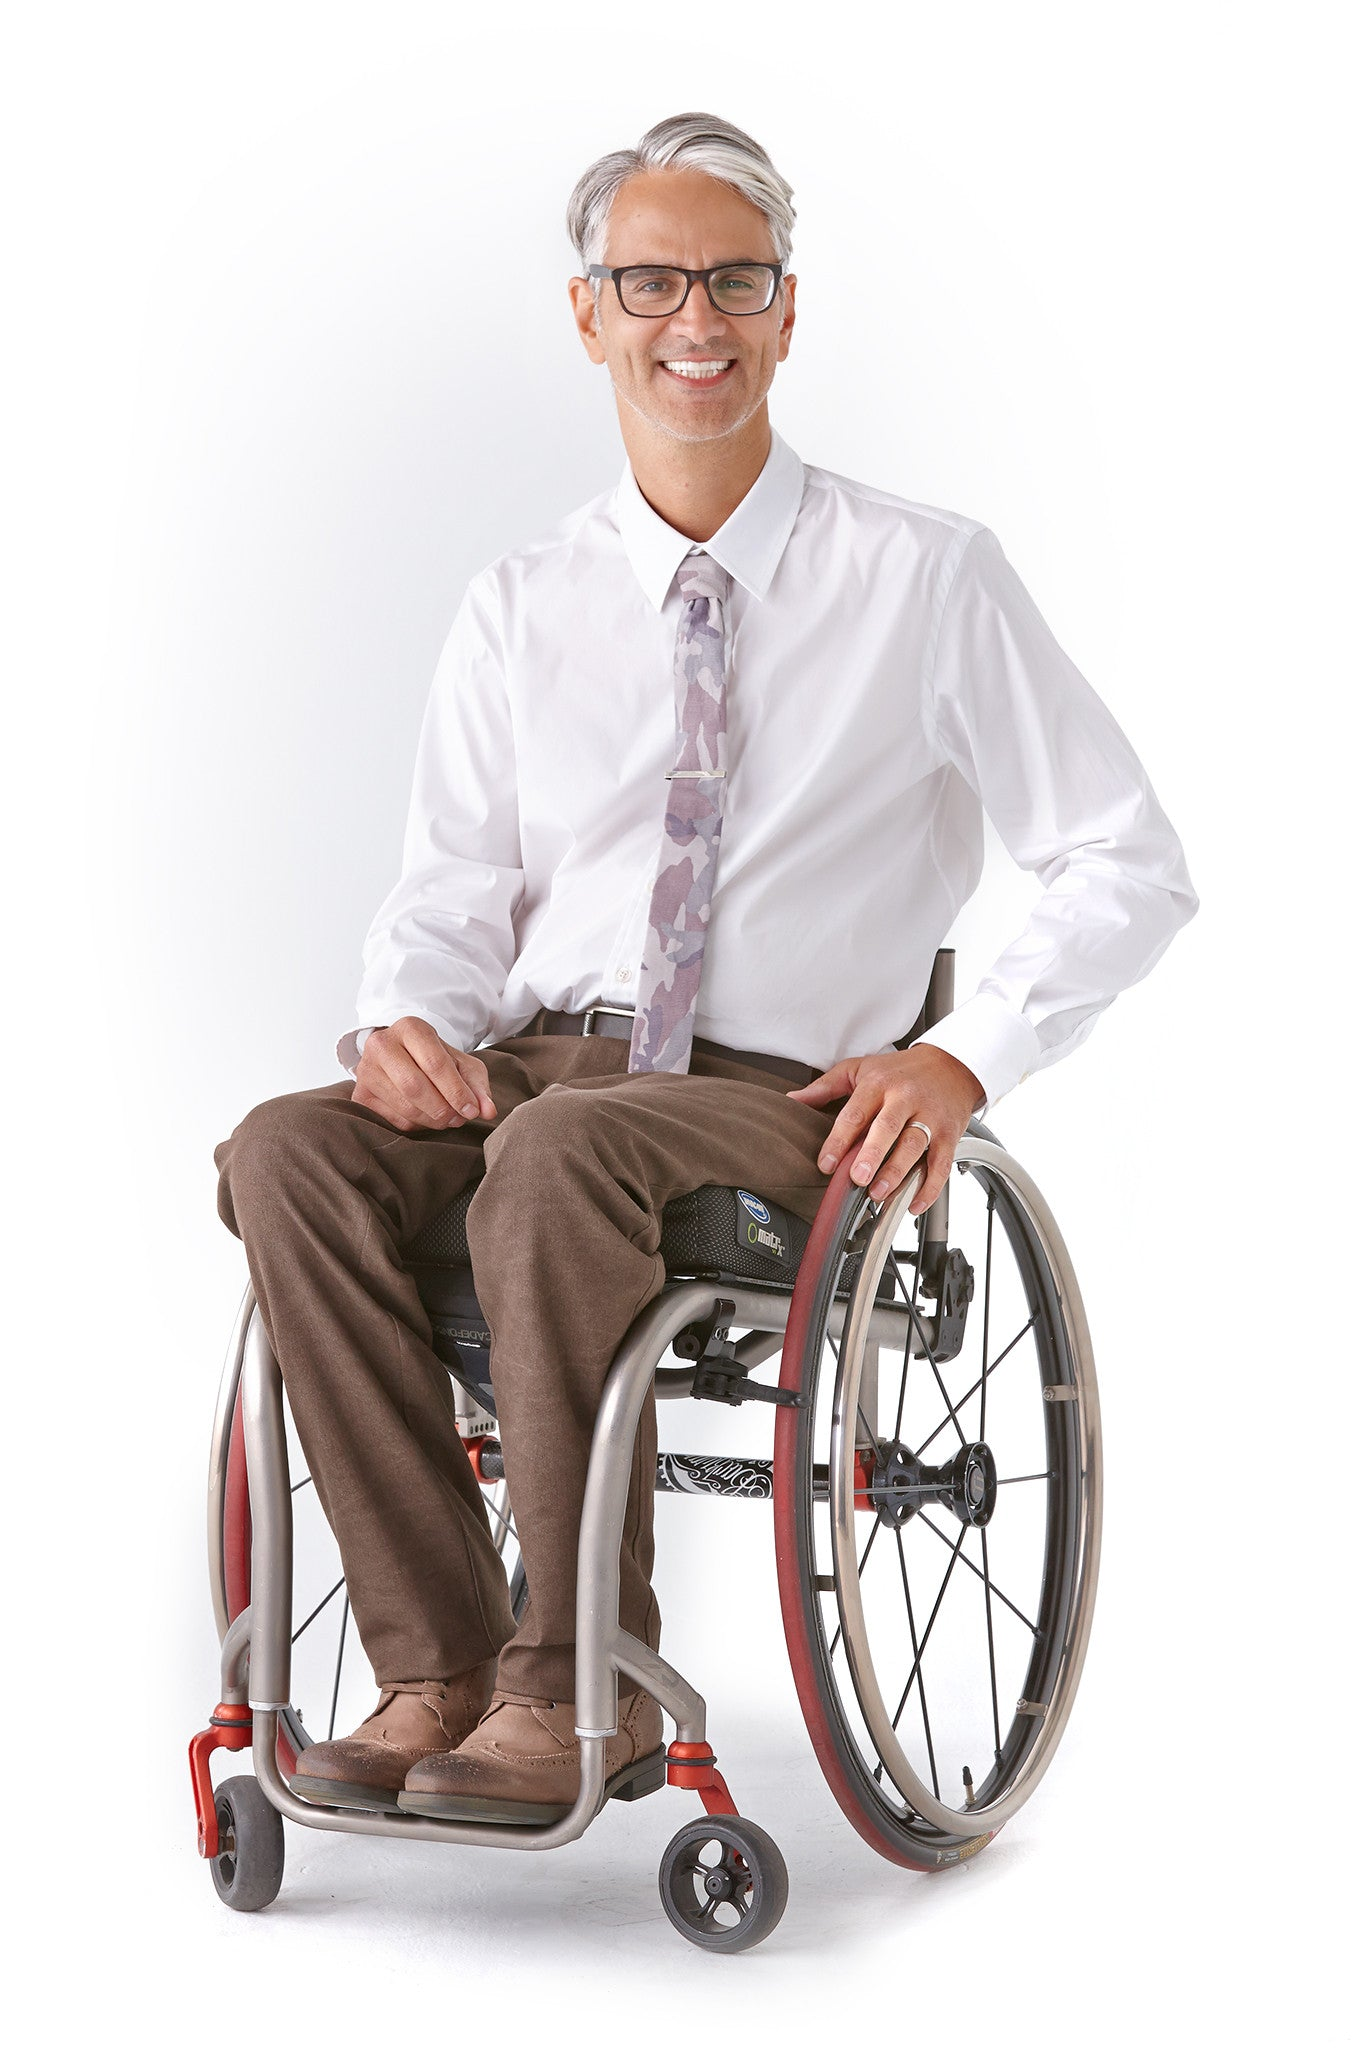 Men's Dress Shirt in White - Not your average disability clothing.